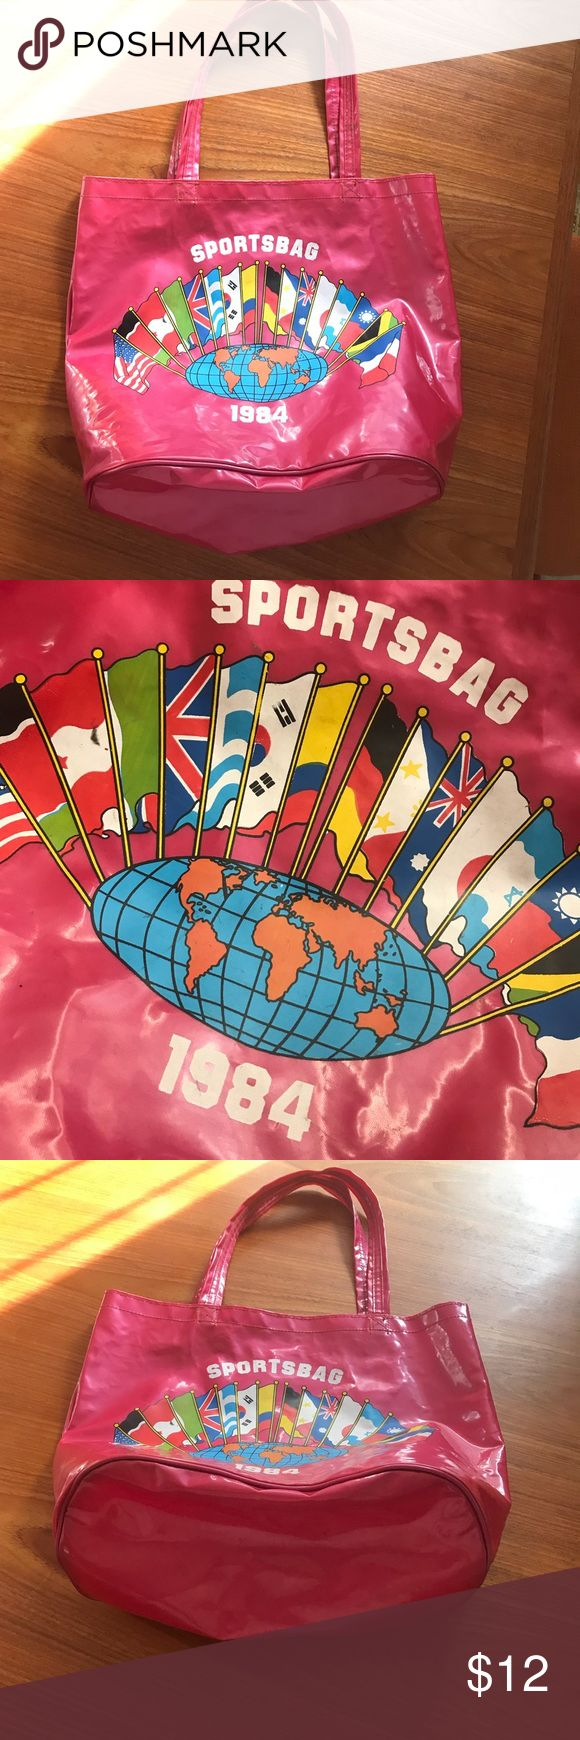 1984 international sports bag Cute pink tote with world flags from 1984 - the year Los Angeles hosted the summer Olympics! Feels like vinyl. Vintage Bags Totes